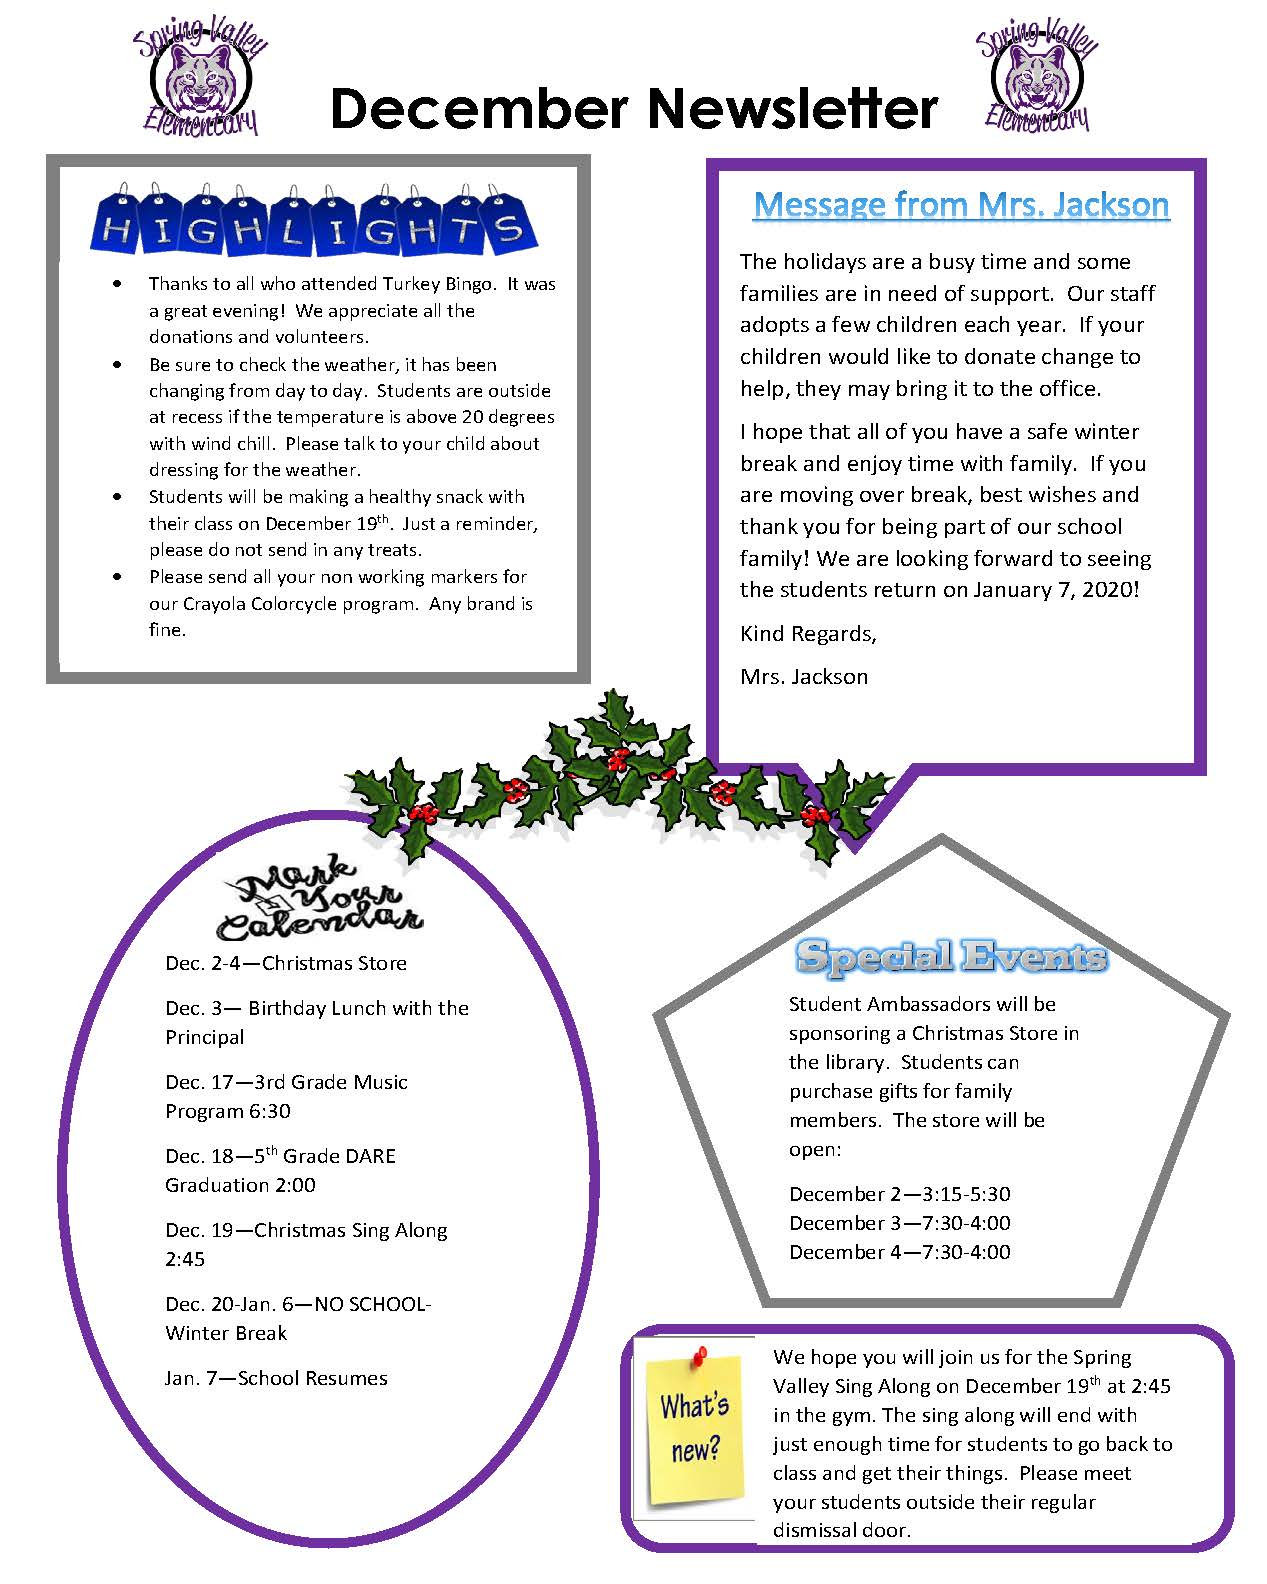 Photograph of December Newsletter